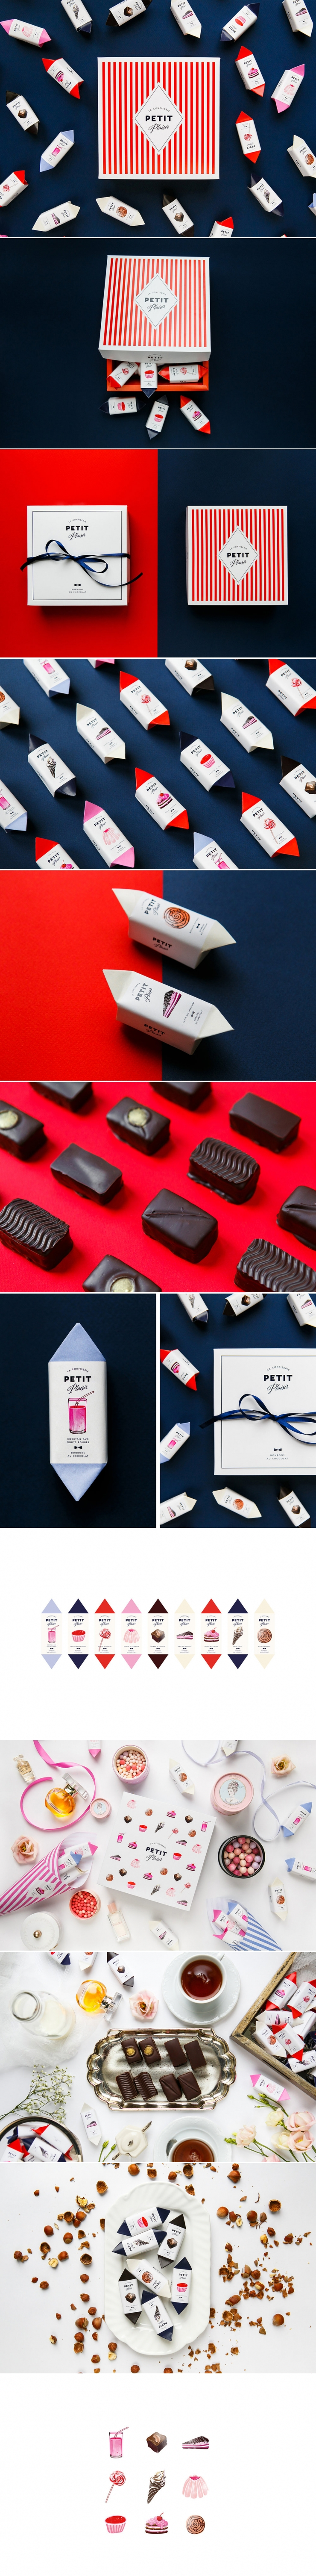 Petit Plaisir Chocolates — The Dieline | Packaging & Branding Design & Innovation News